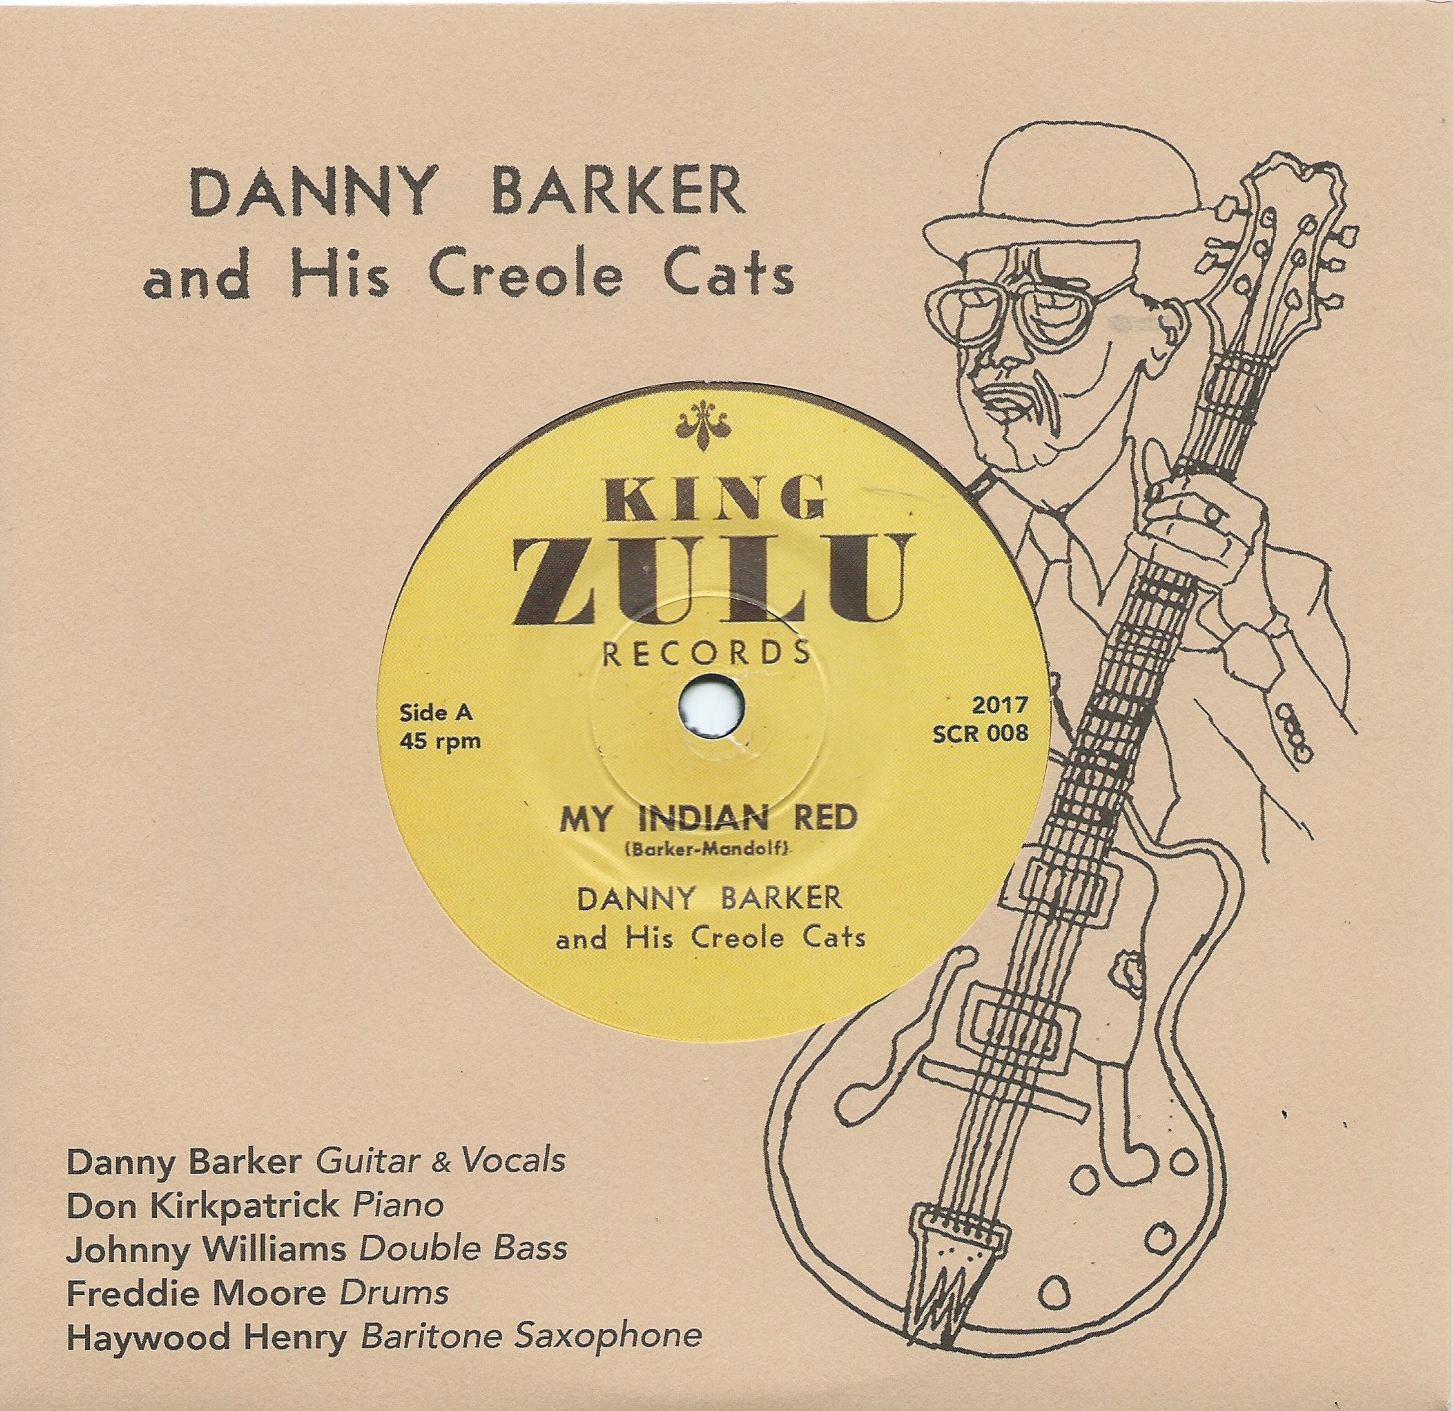 Danny Barker & His Creole Cats - My Indian Red (45rpm, 7-inch vinyl)